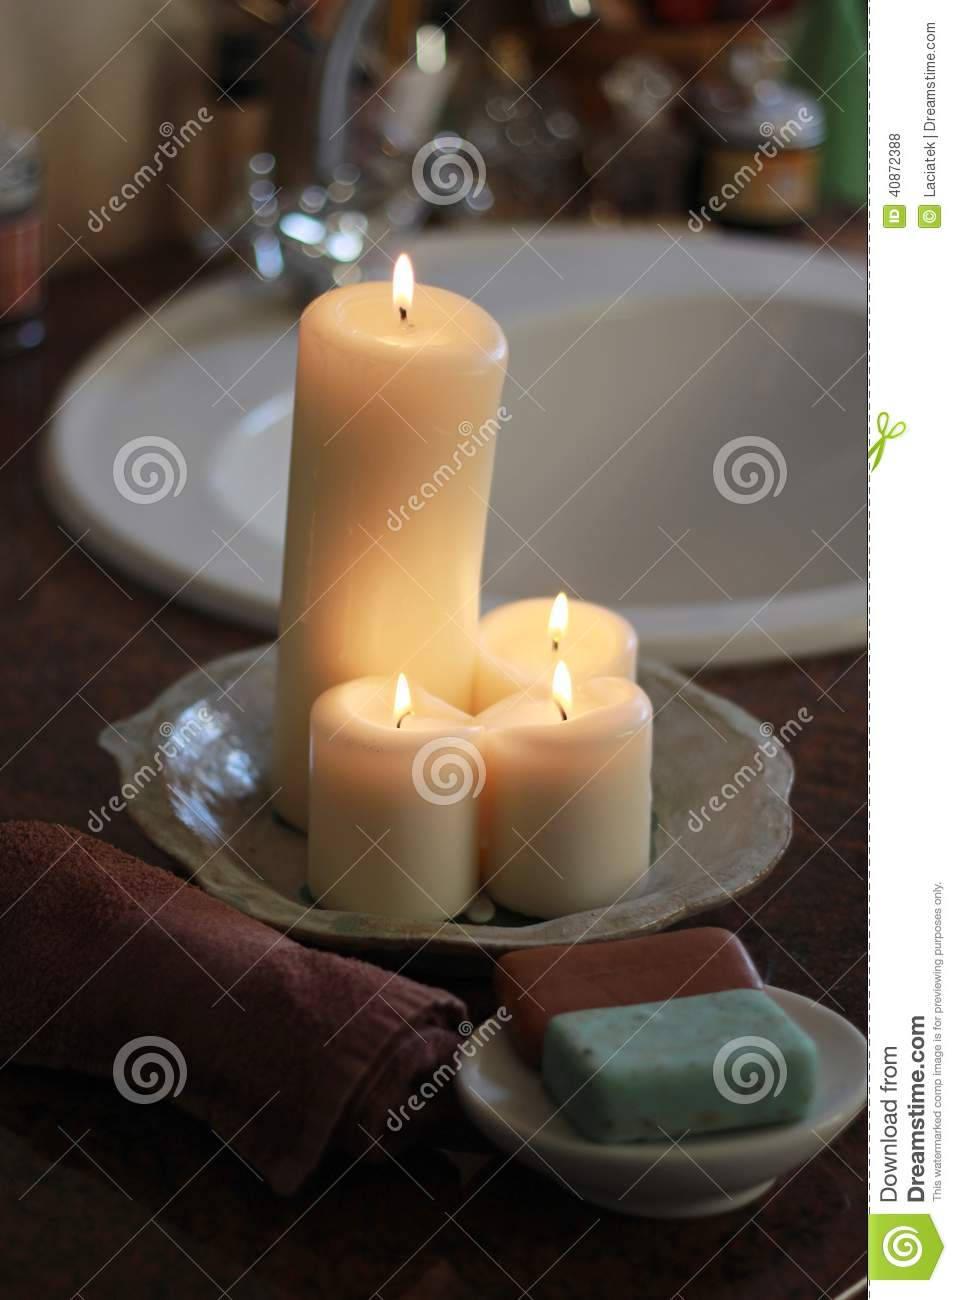 Candles In The Bathroom Stock Photo Image 40872388